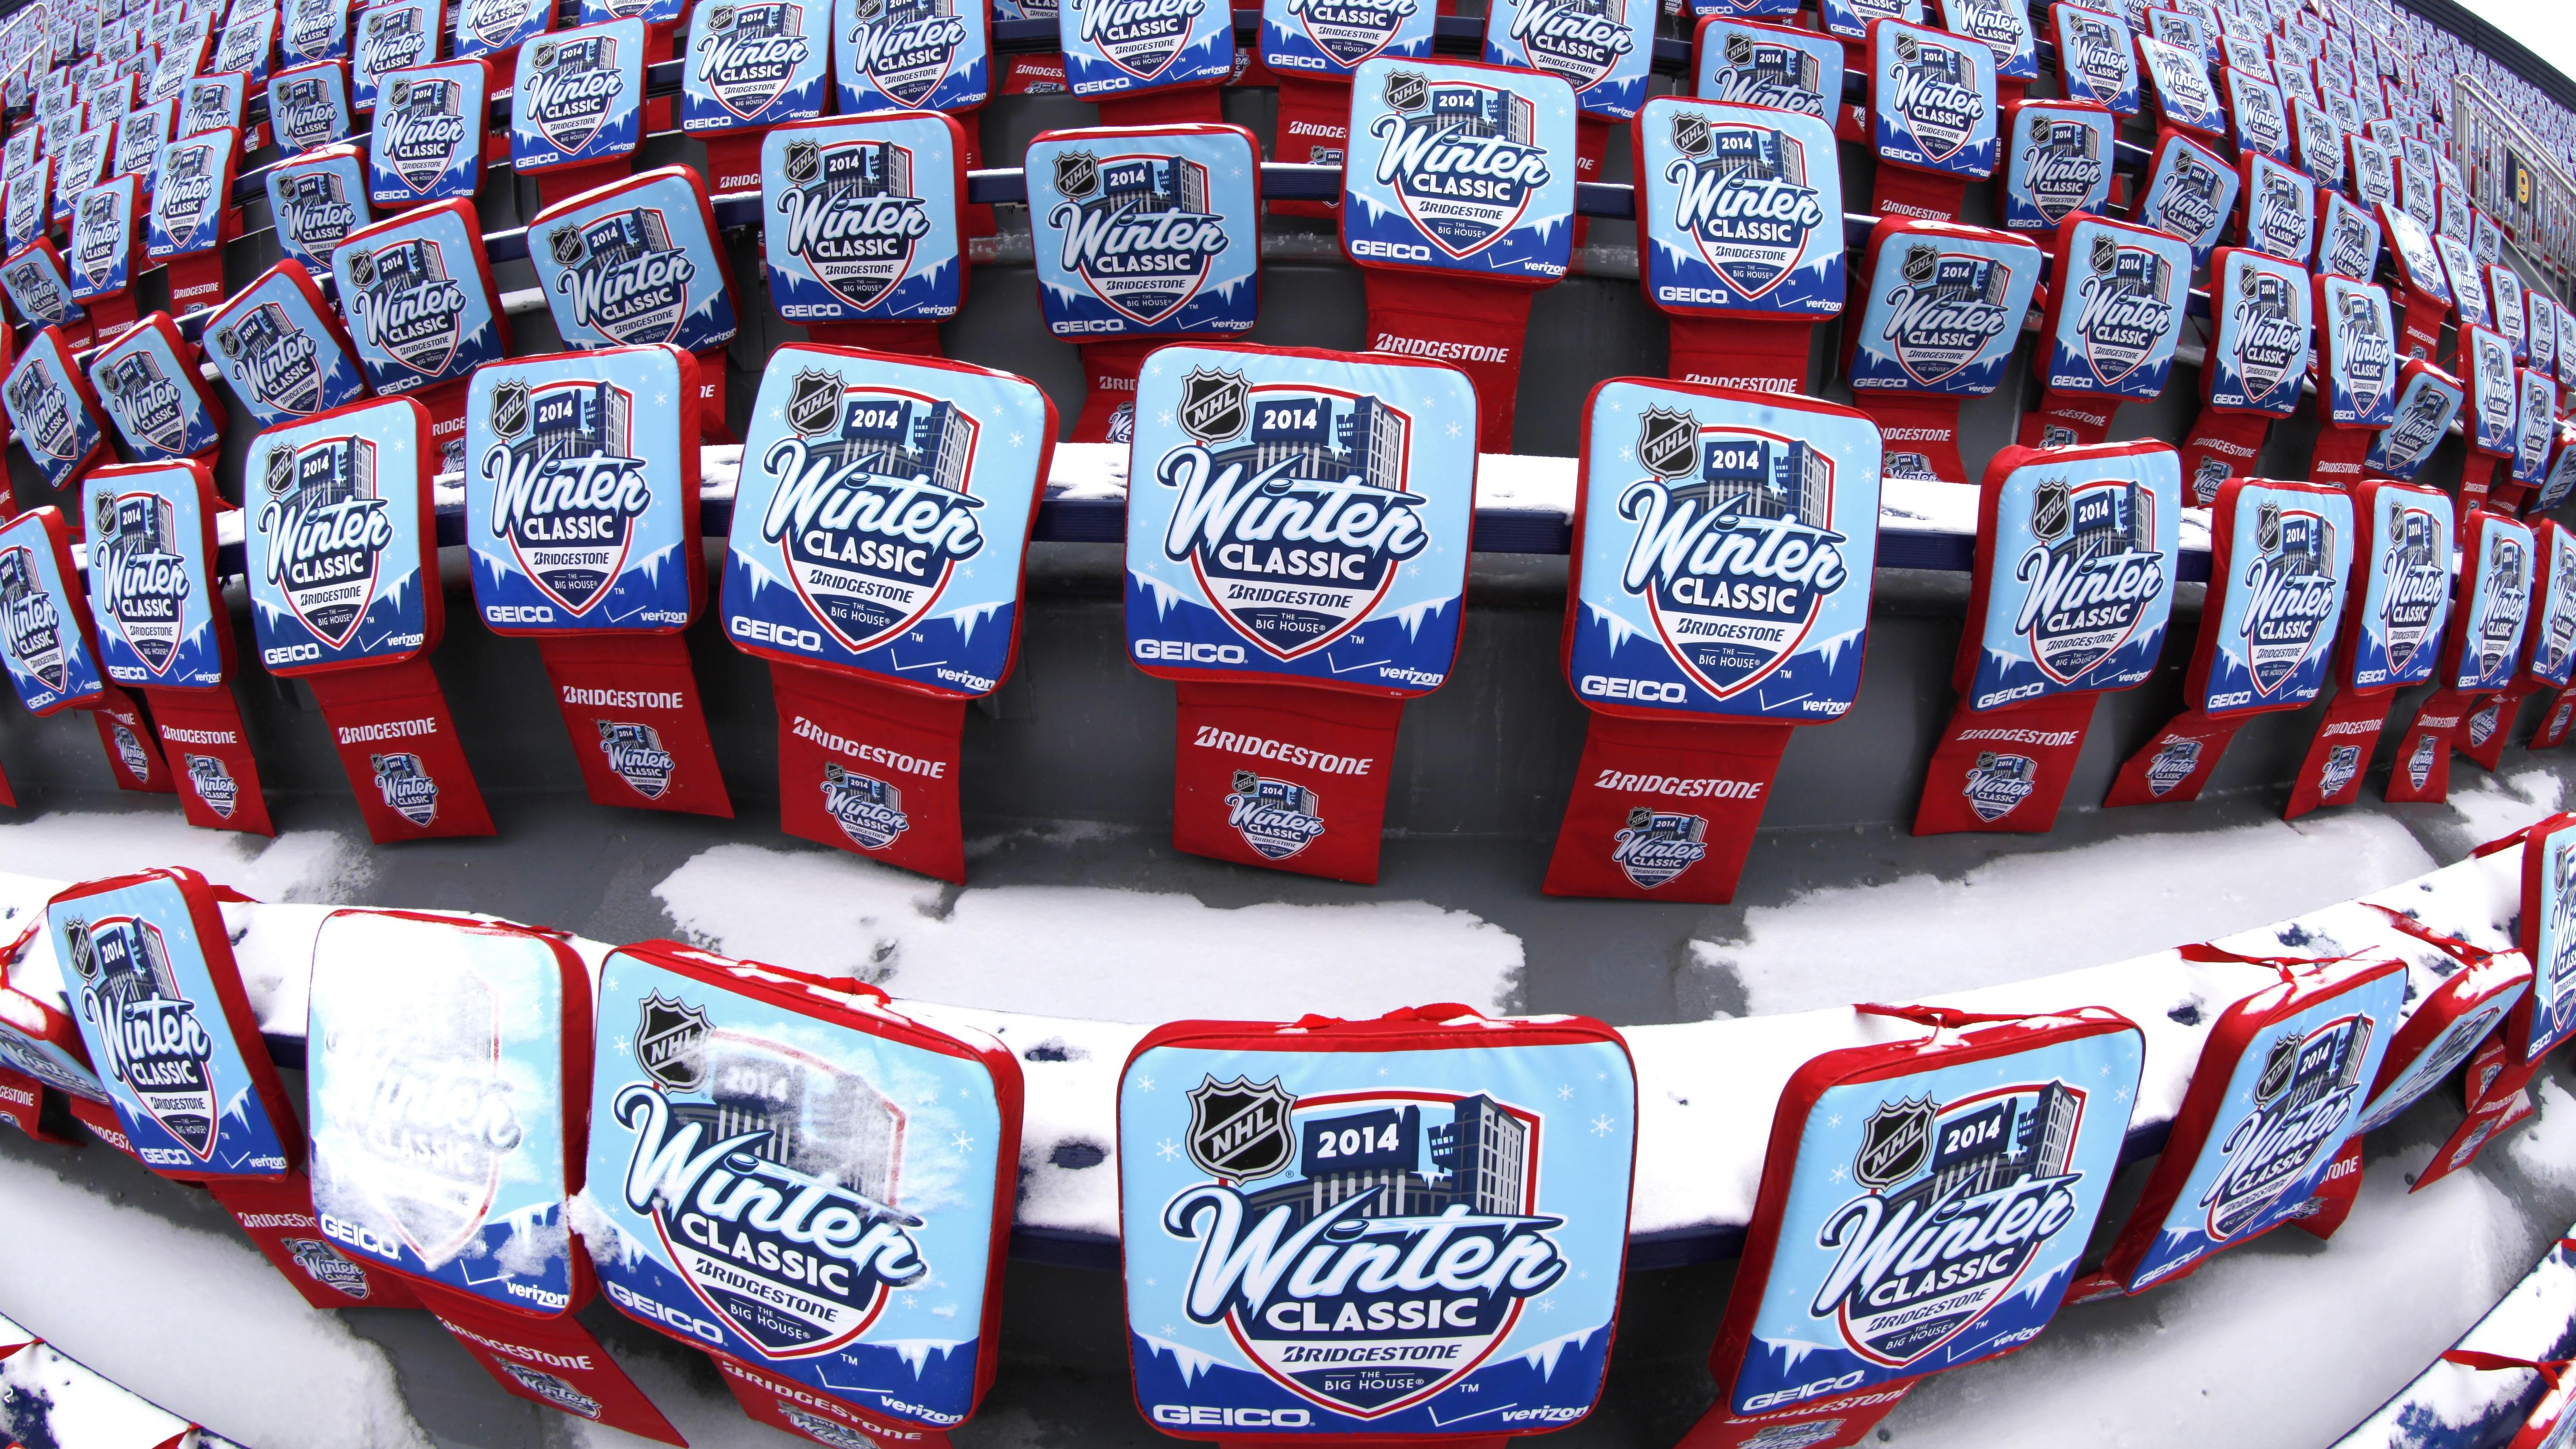 8357e78c4 NHL Winter Classic hockey game seat pads are displayed at Michigan Stadium  in Ann Arbor ahead of the New Year s Day outdoor game between the Detroit  Red ...